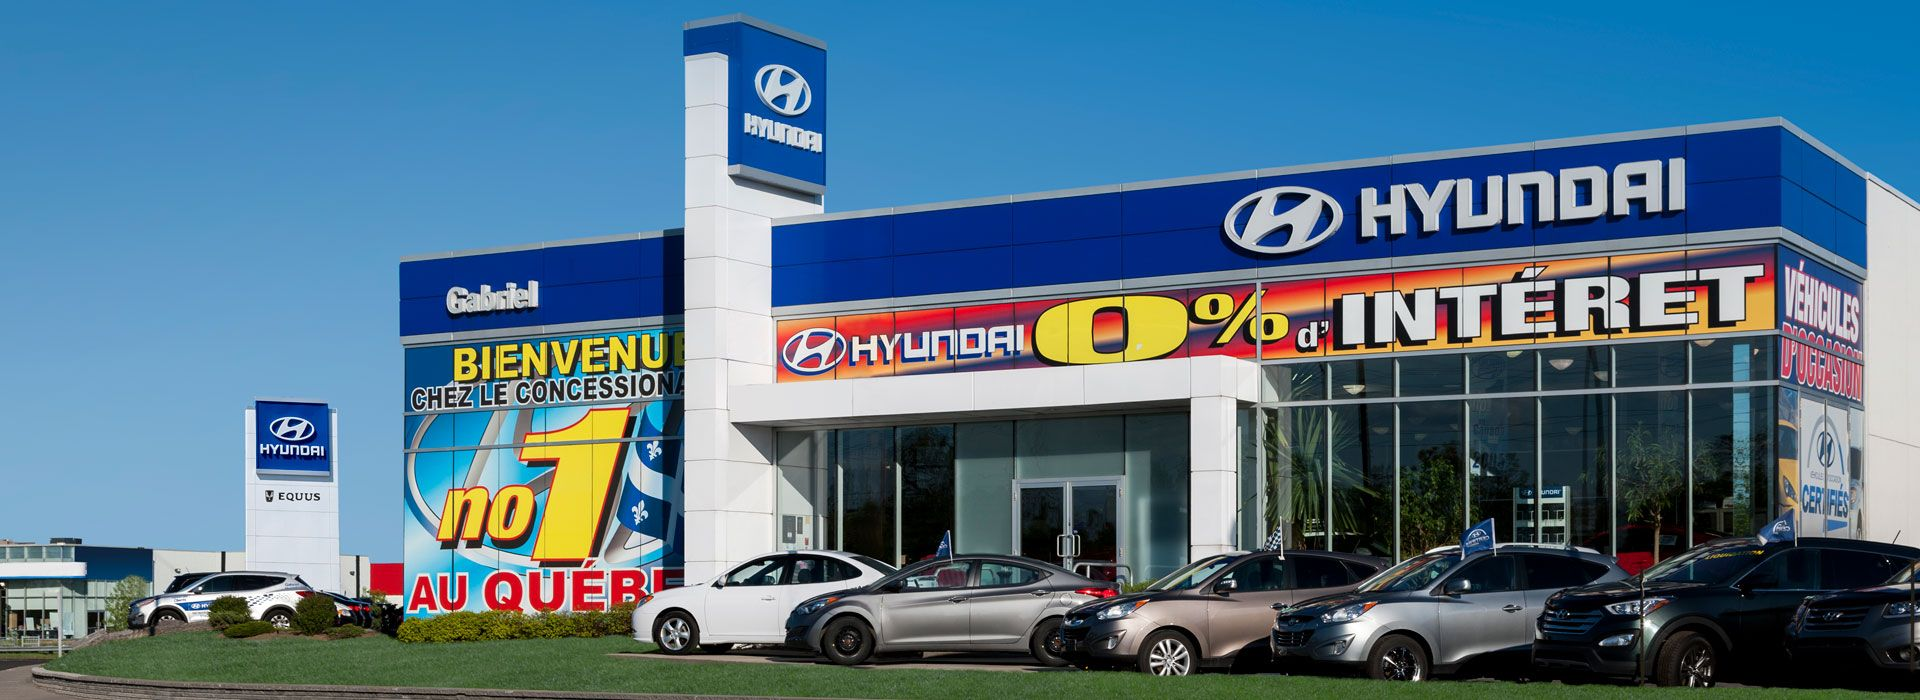 Hyundai Gabriel Anjou: Your Hyundai Dealership In Anjou, Montreal